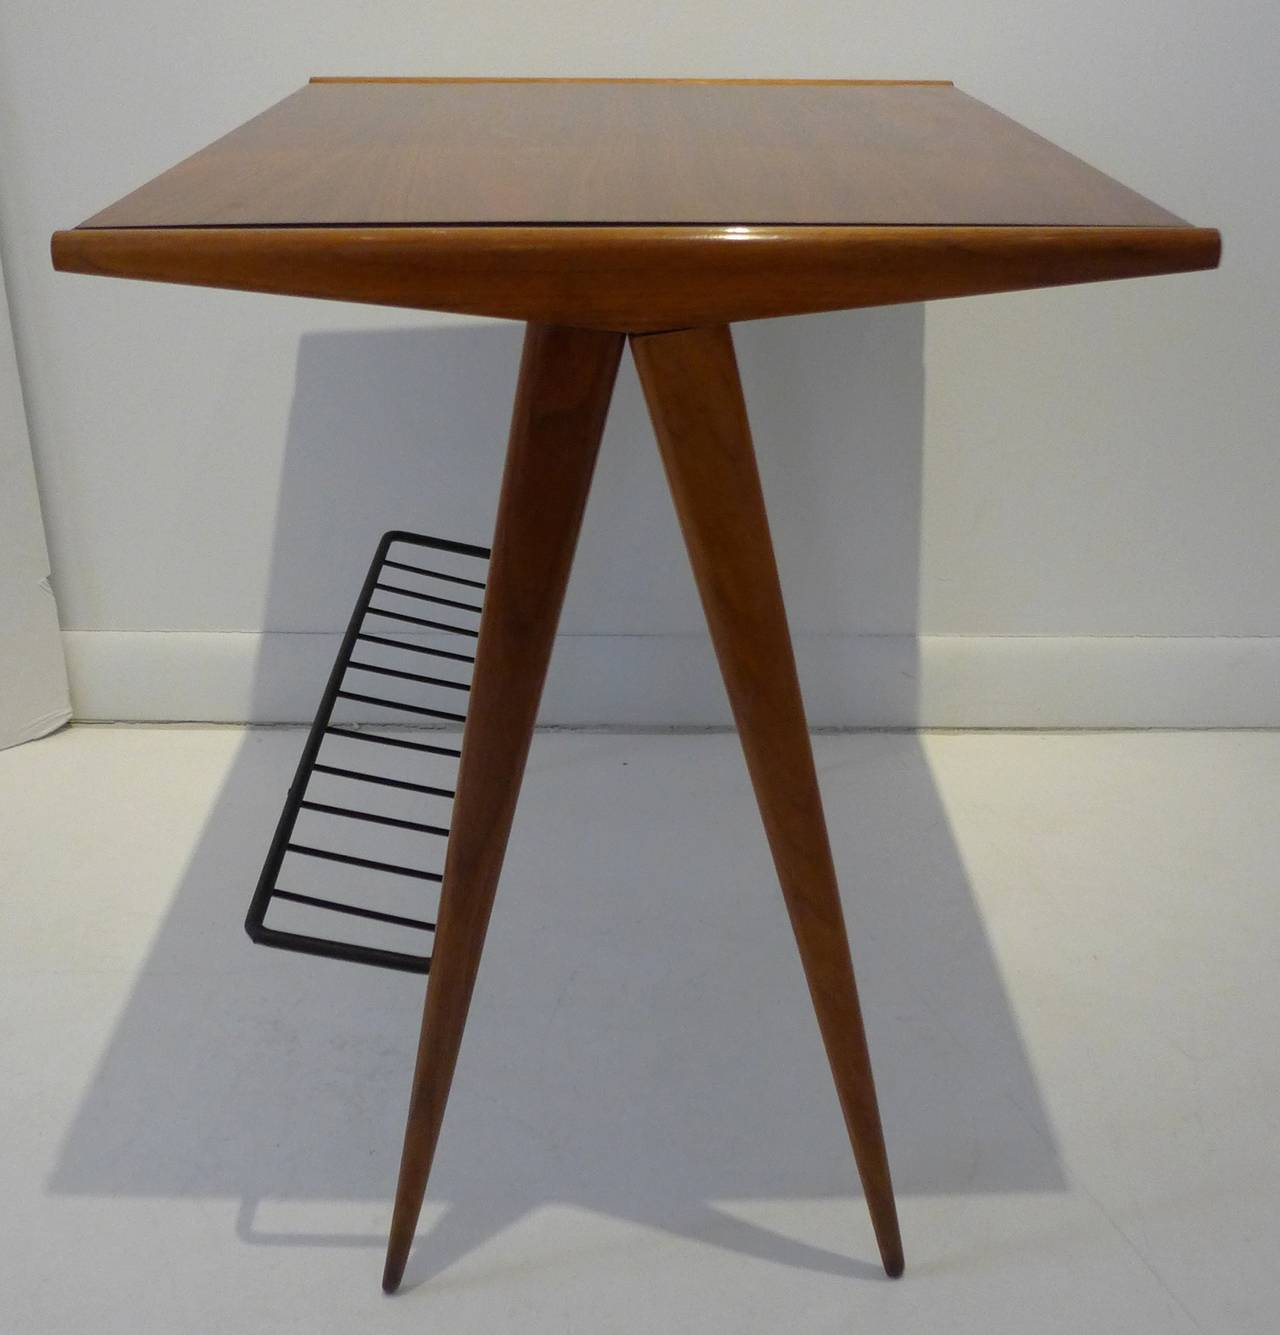 Arthur umanoff side table with magazine rack at 1stdibs for 13 a table magasin